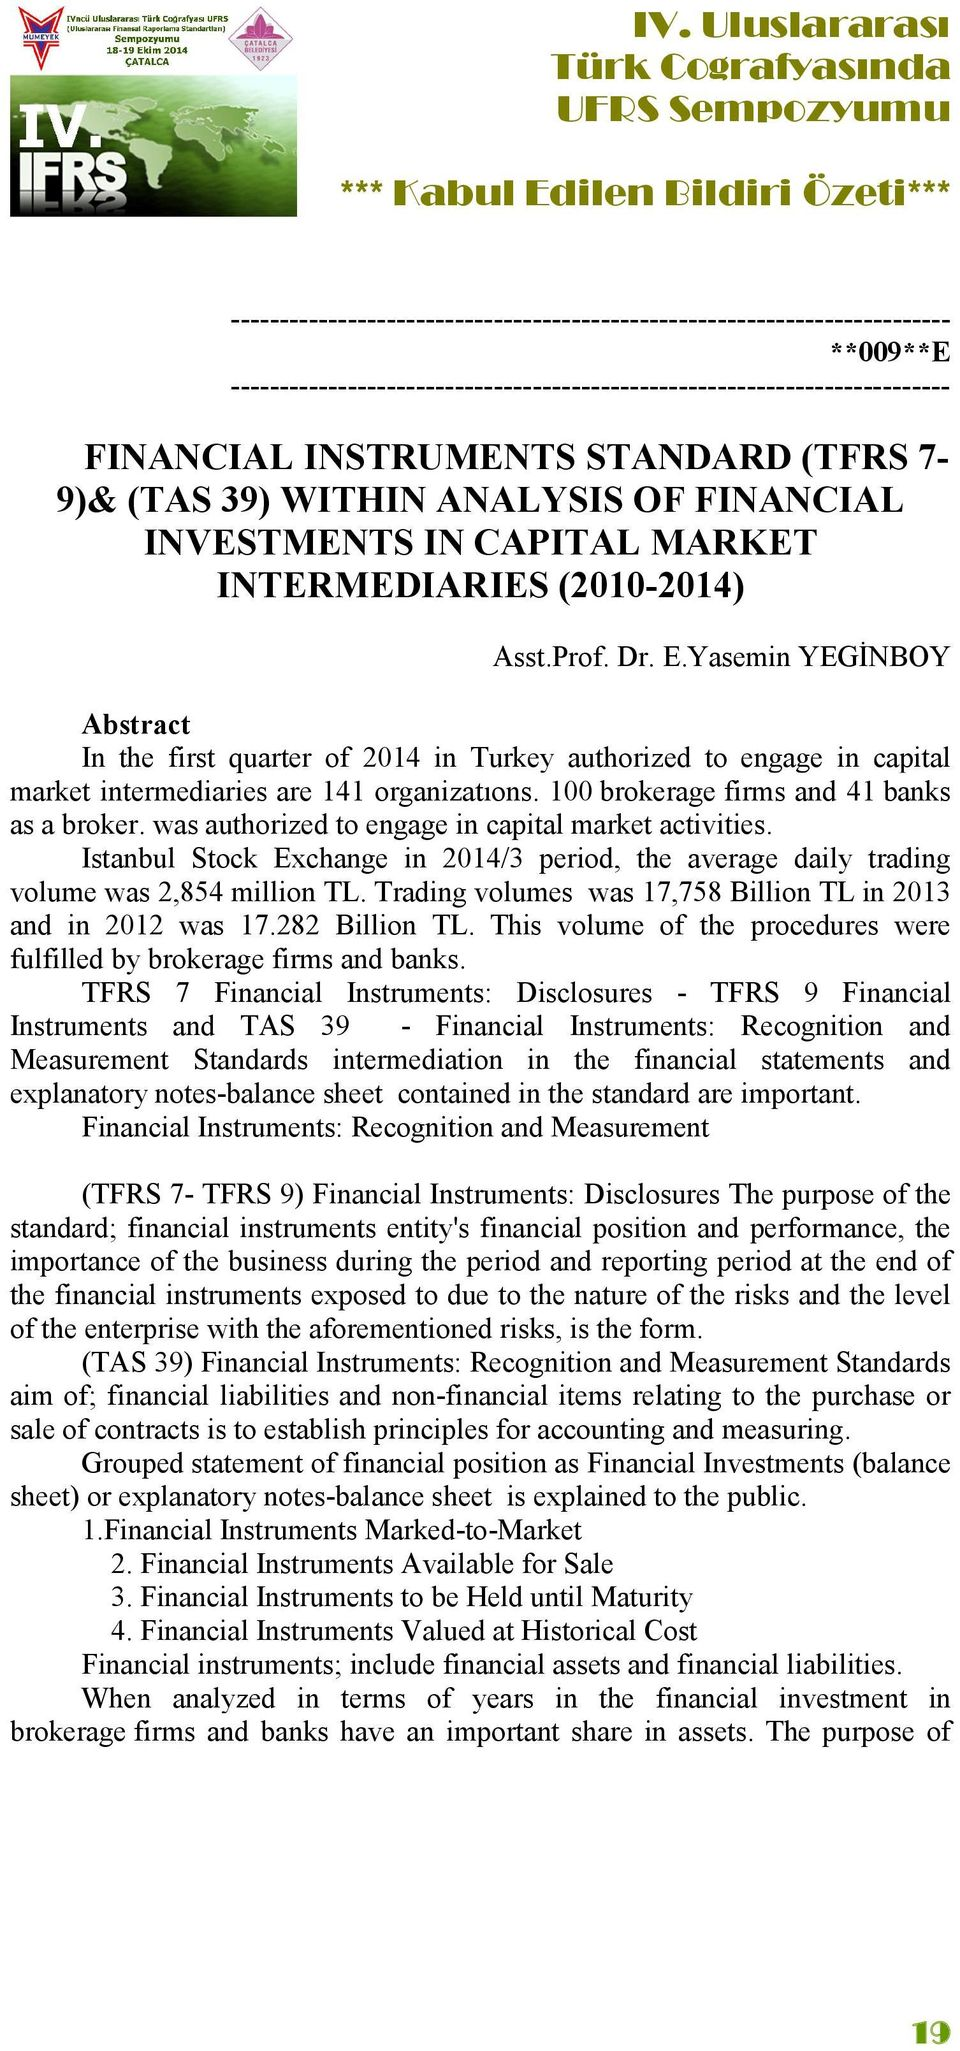 was authorized to engage in capital market activities. Istanbul Stock Exchange in 2014/3 period, the average daily trading volume was 2,854 million TL.